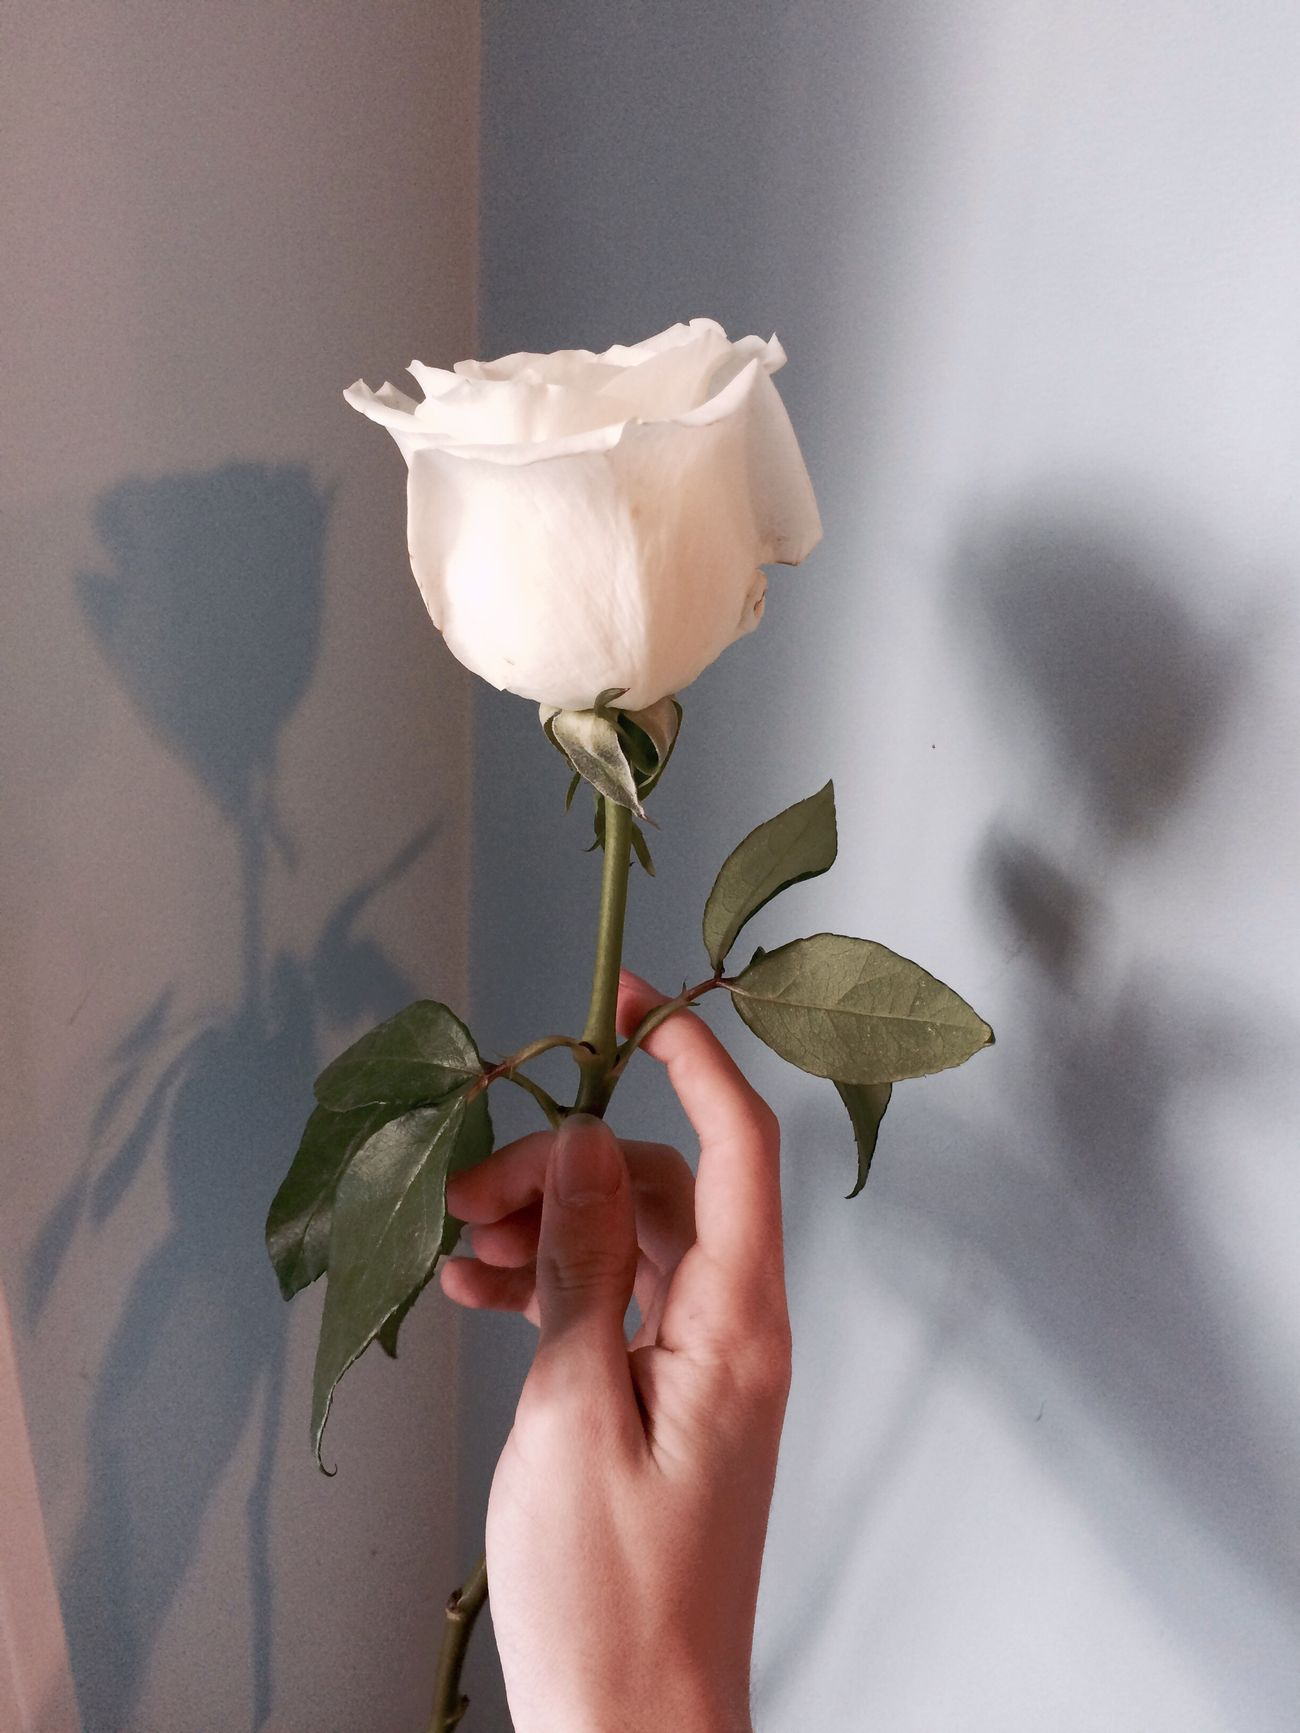 Flower Human Hand Human Body Part Nature Petal Close-up Holding Fragility Leaf Freshness One Person Plant Flower Head Beauty In Nature Real People Day Indoors  People Shadow Pastel Blue First Eyeem Photo